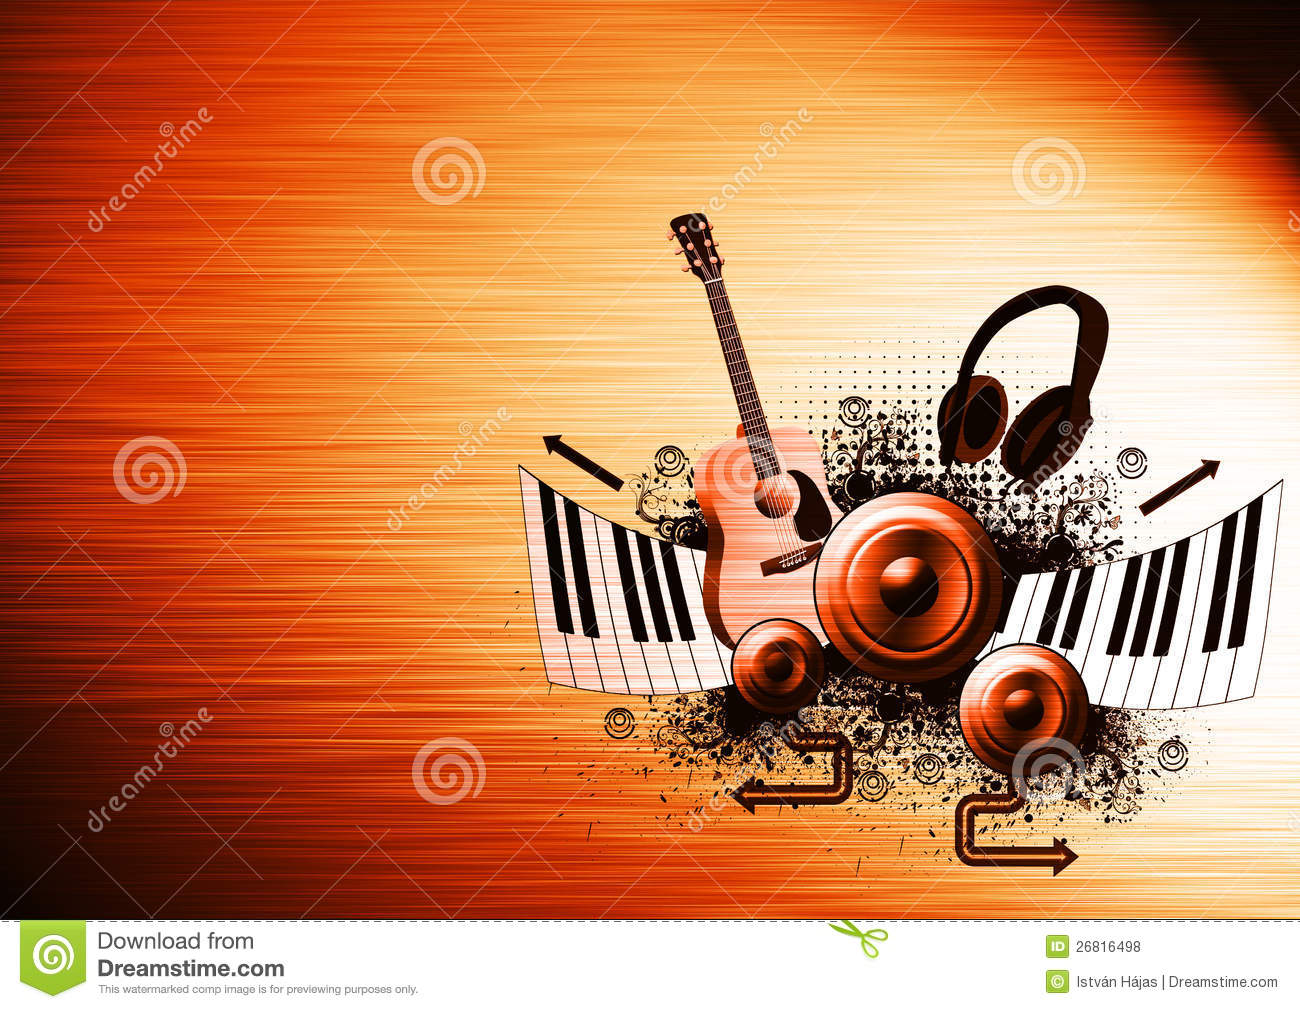 jazz music wallpaper backgrounds